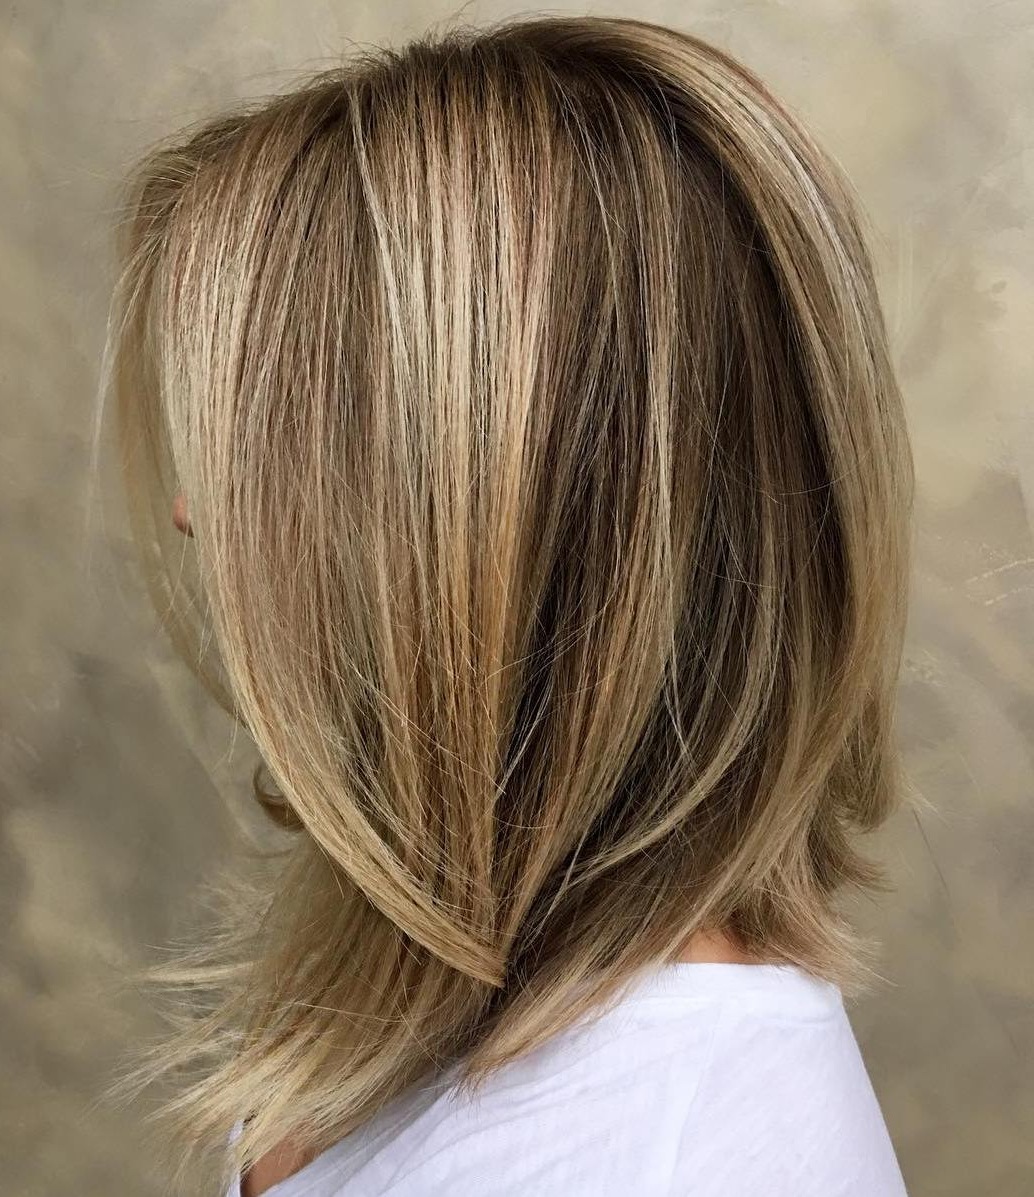 60 Inspiring Long Bob Hairstyles And Lob Haircuts 2018 Pertaining To Tousled Wavy Bronde Bob Hairstyles (View 10 of 20)